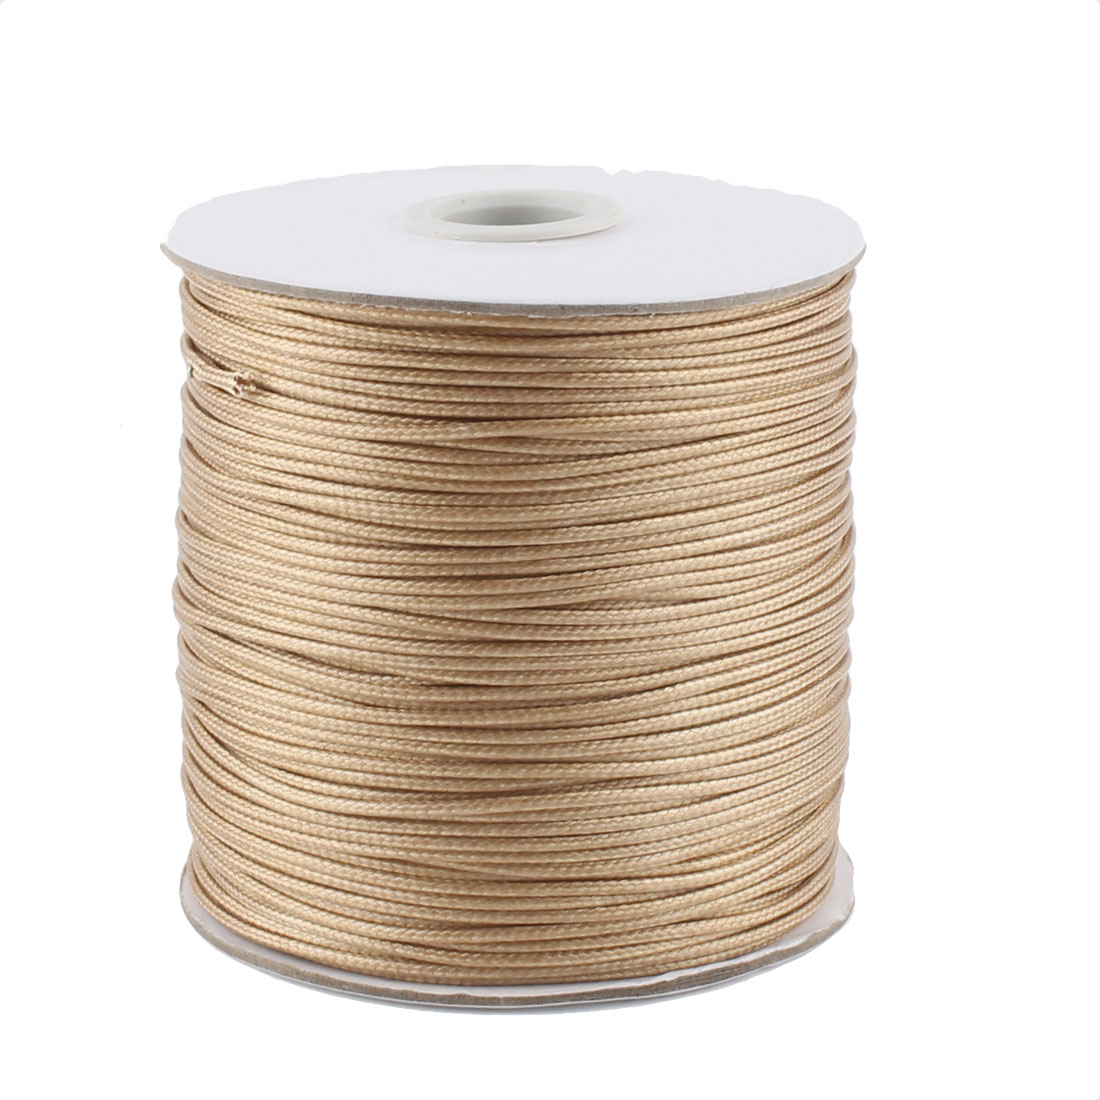 DIY Bracelet Necklace Cotton Waxed Making String Beading Thread Cord Roll Khaki 190 Yard